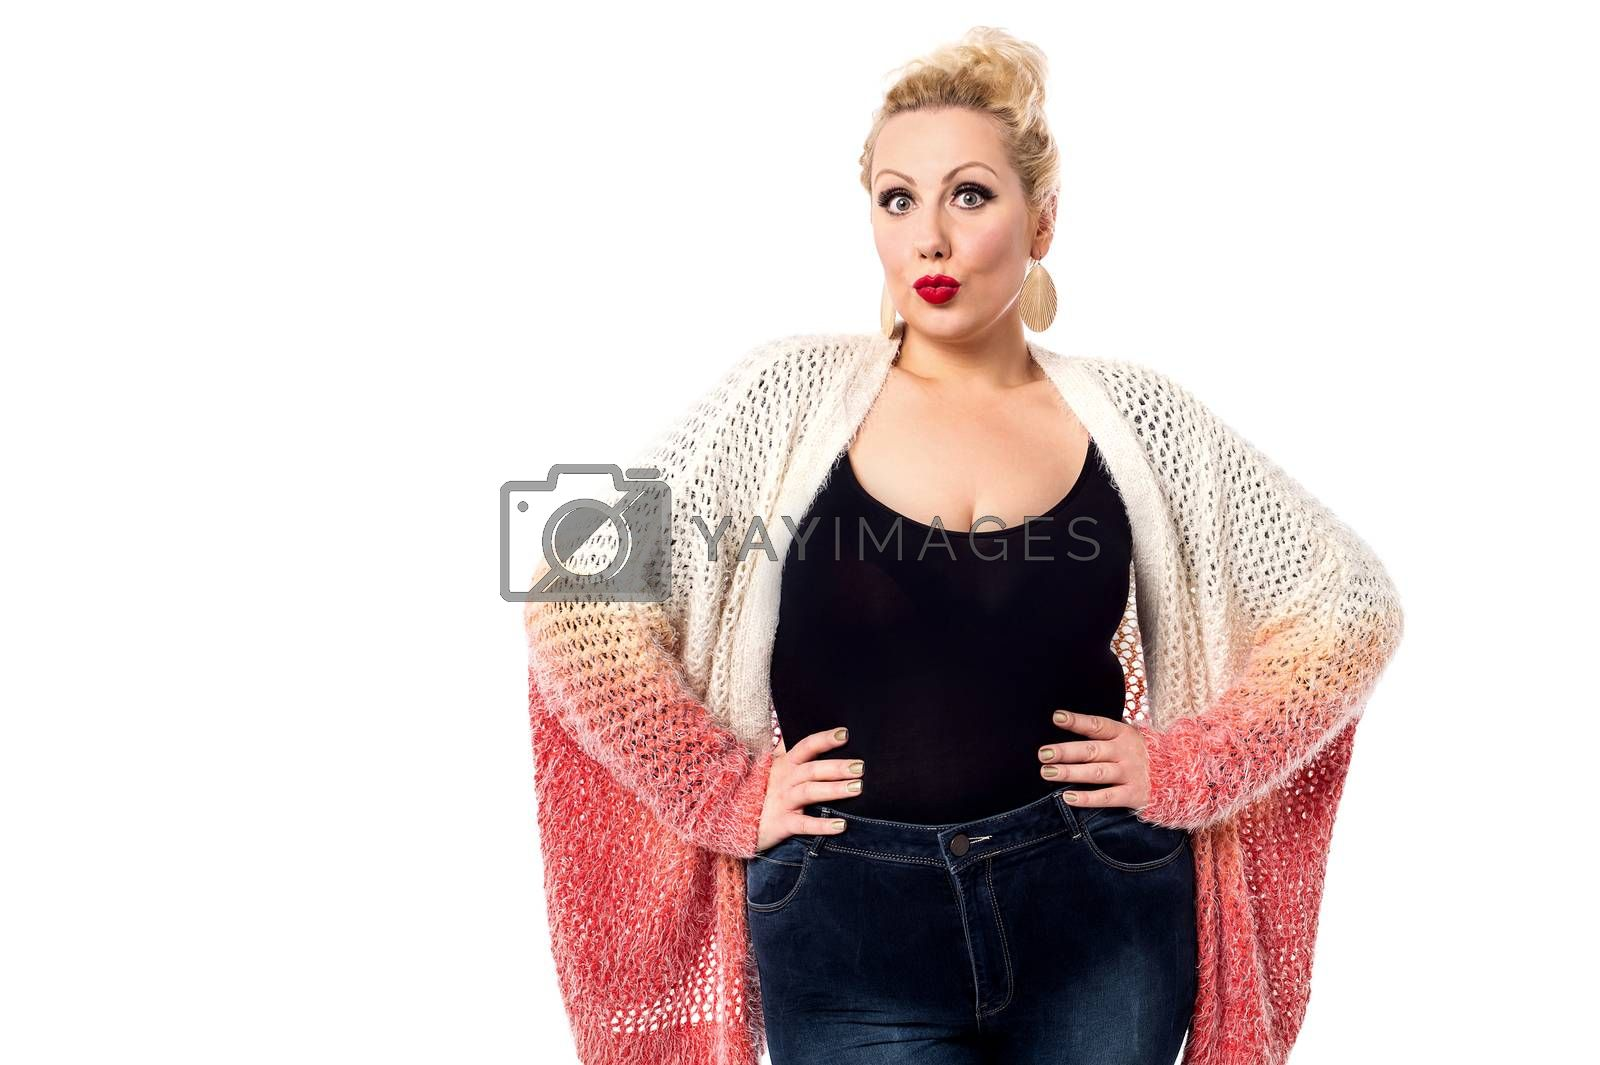 Stylish woman posing with knitted apparel over white